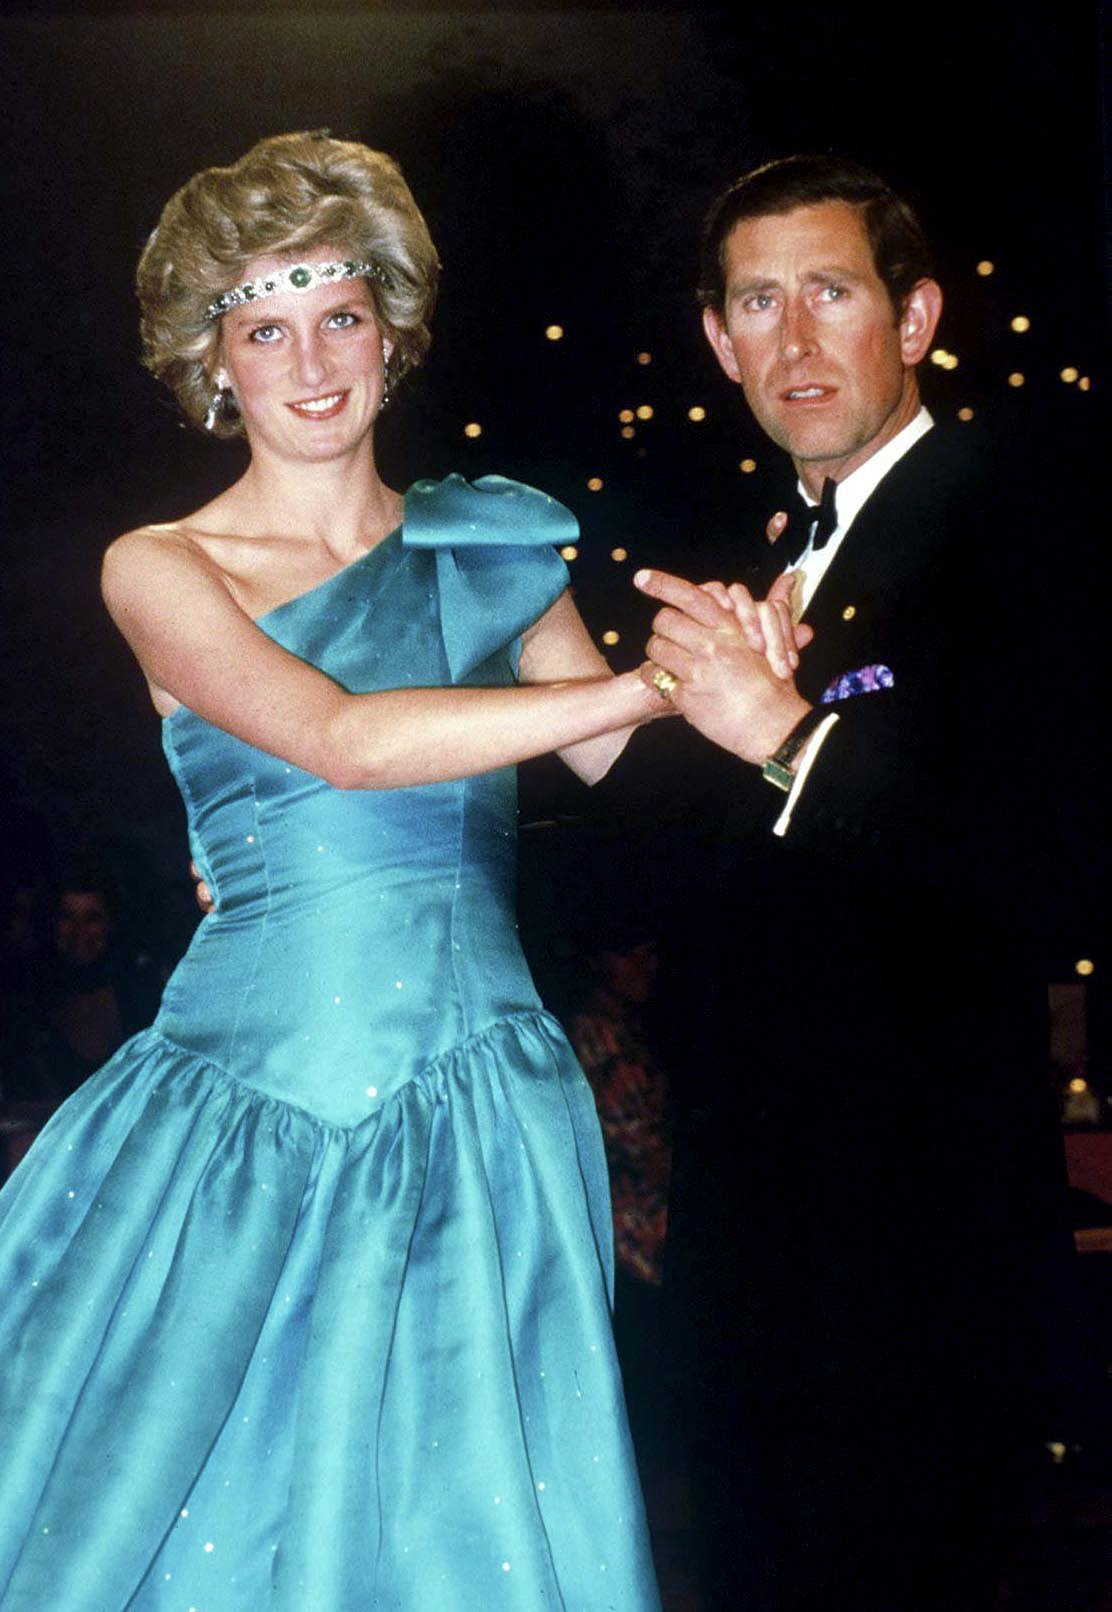 Princess Diana and Prince Charles in Australia on October 1, 1985 | Source: Getty Images